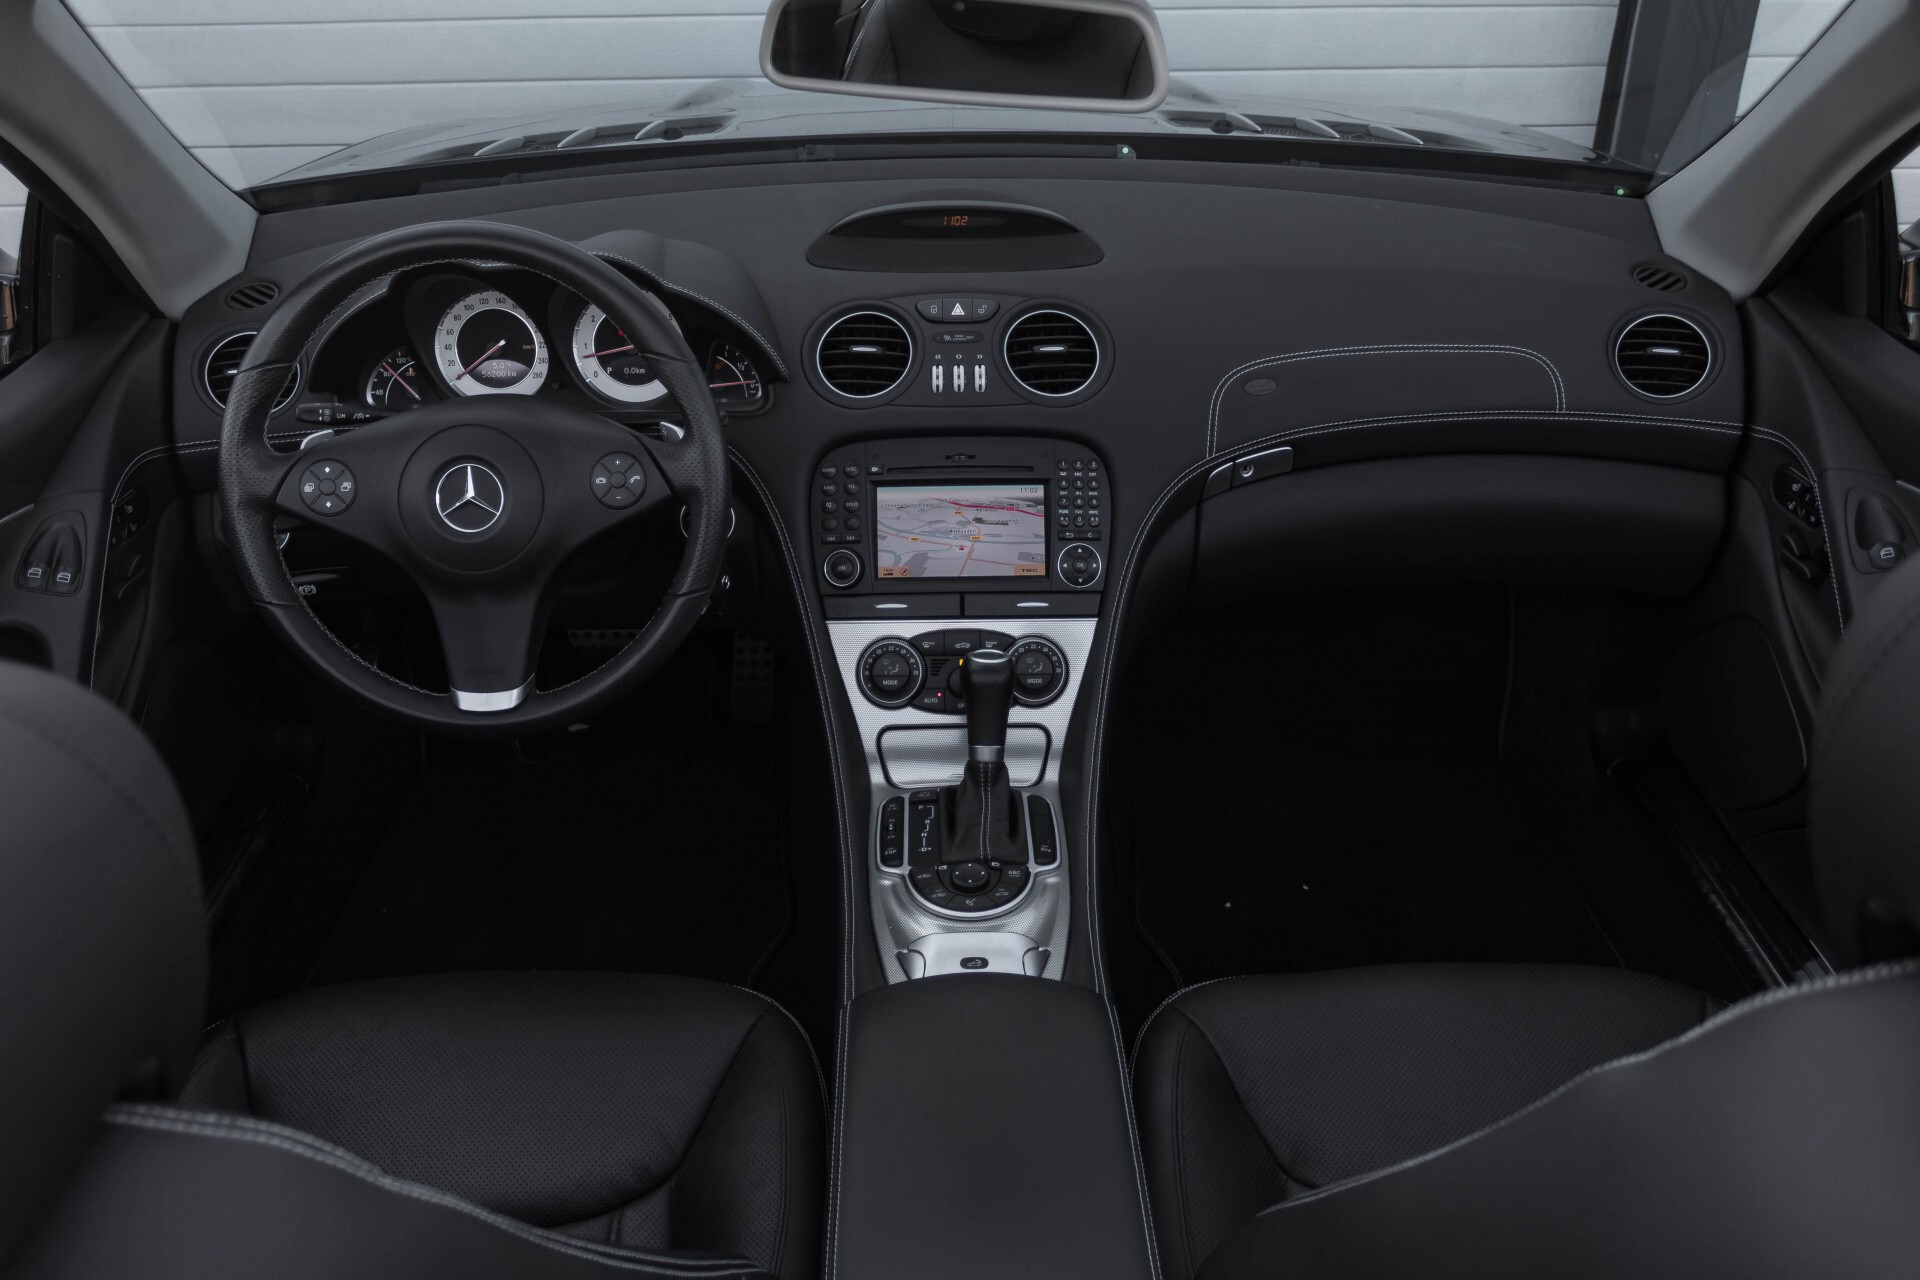 Mercedes-Benz SL-Klasse 500 Sport ABC/Harman-Kardon/Comand/Distronic Aut7 NP €175292 Foto 9